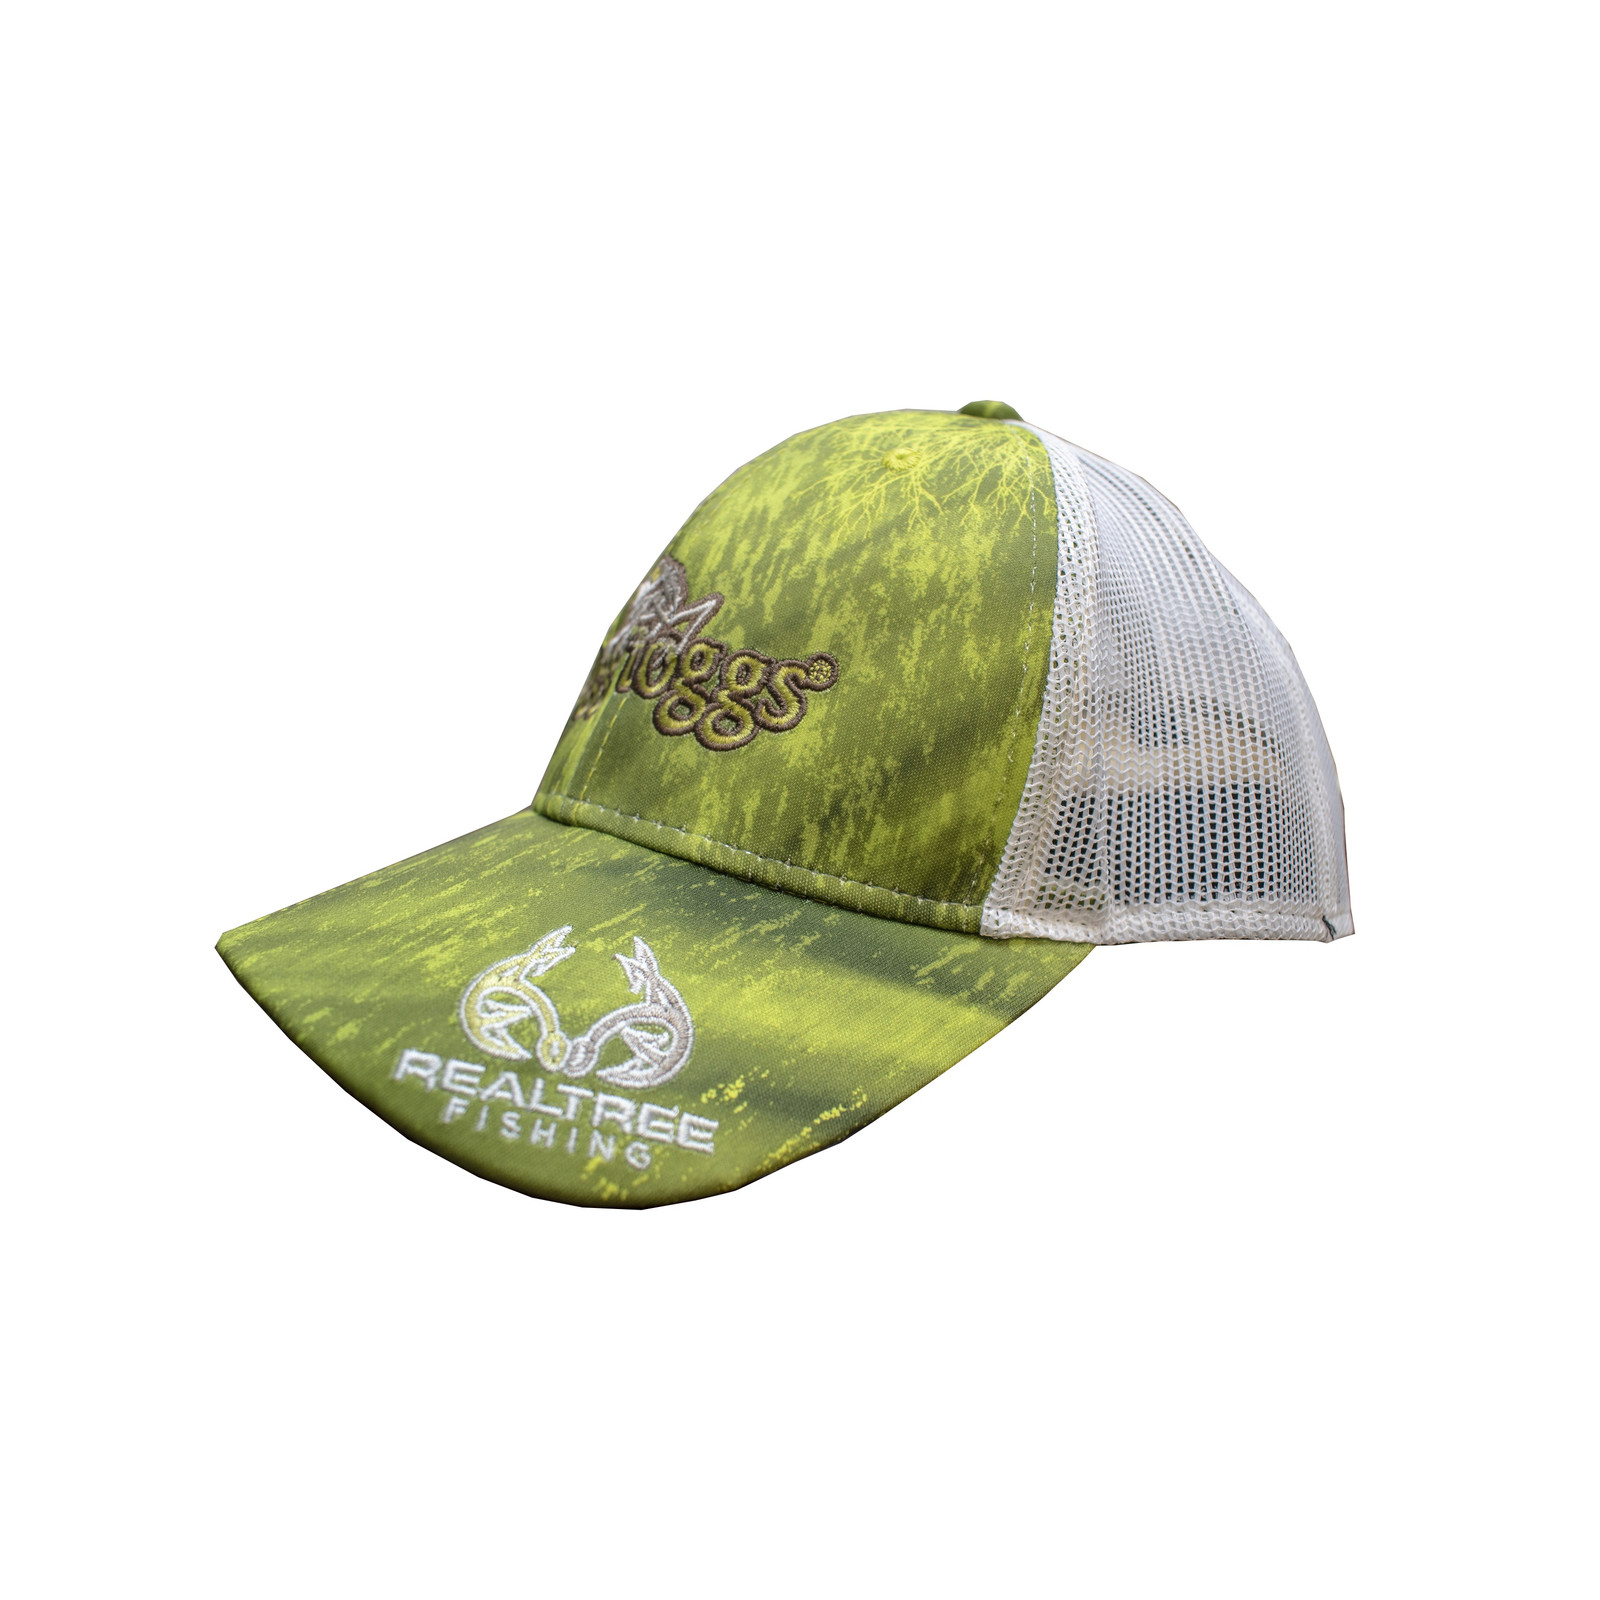 FTTCRT_Realtree-Fishing-Dark-Lime-01_thumbnail-large